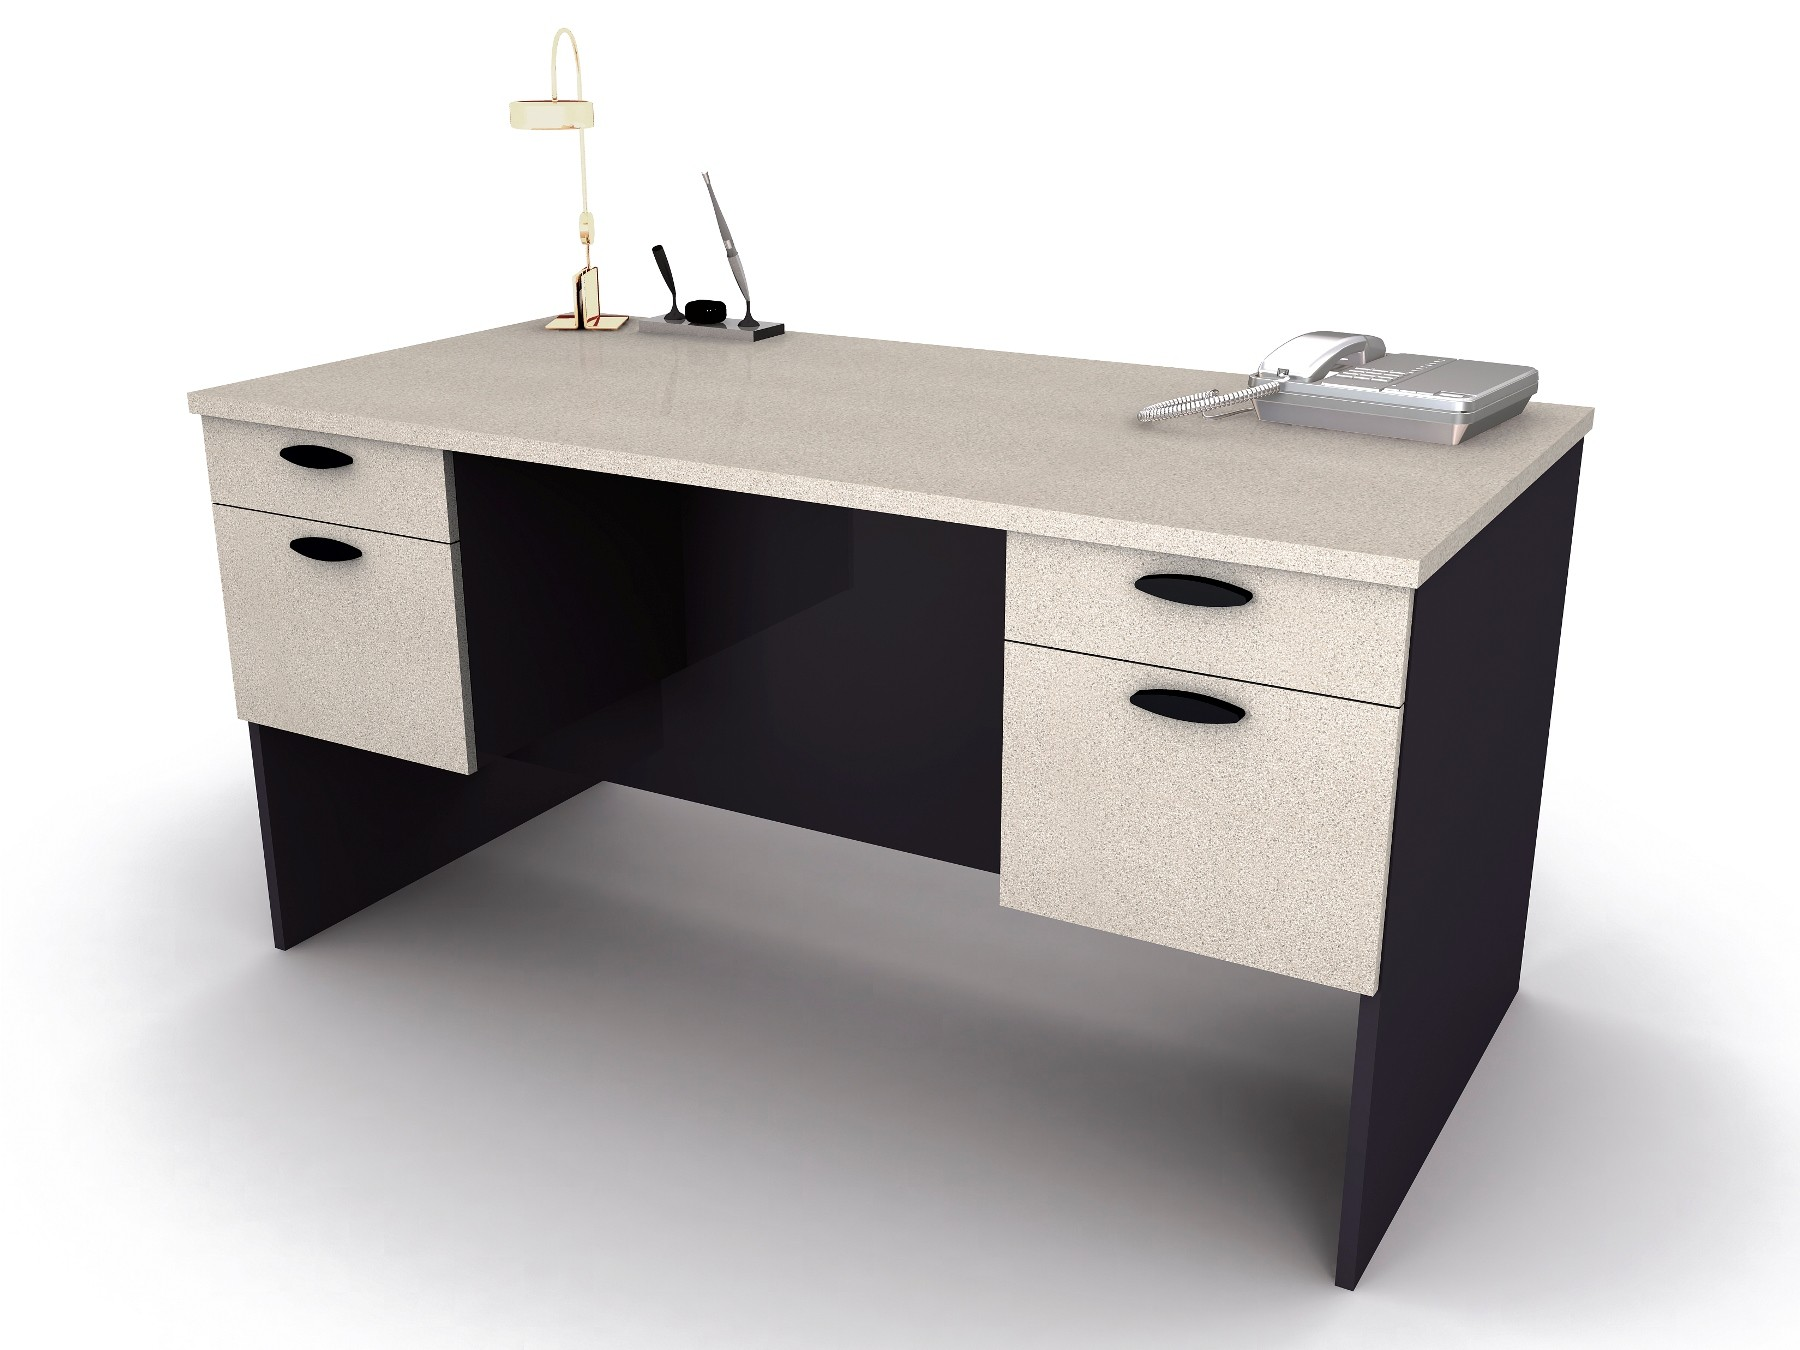 stylish office tables. Desk In Office. Office Table N Stylish Tables